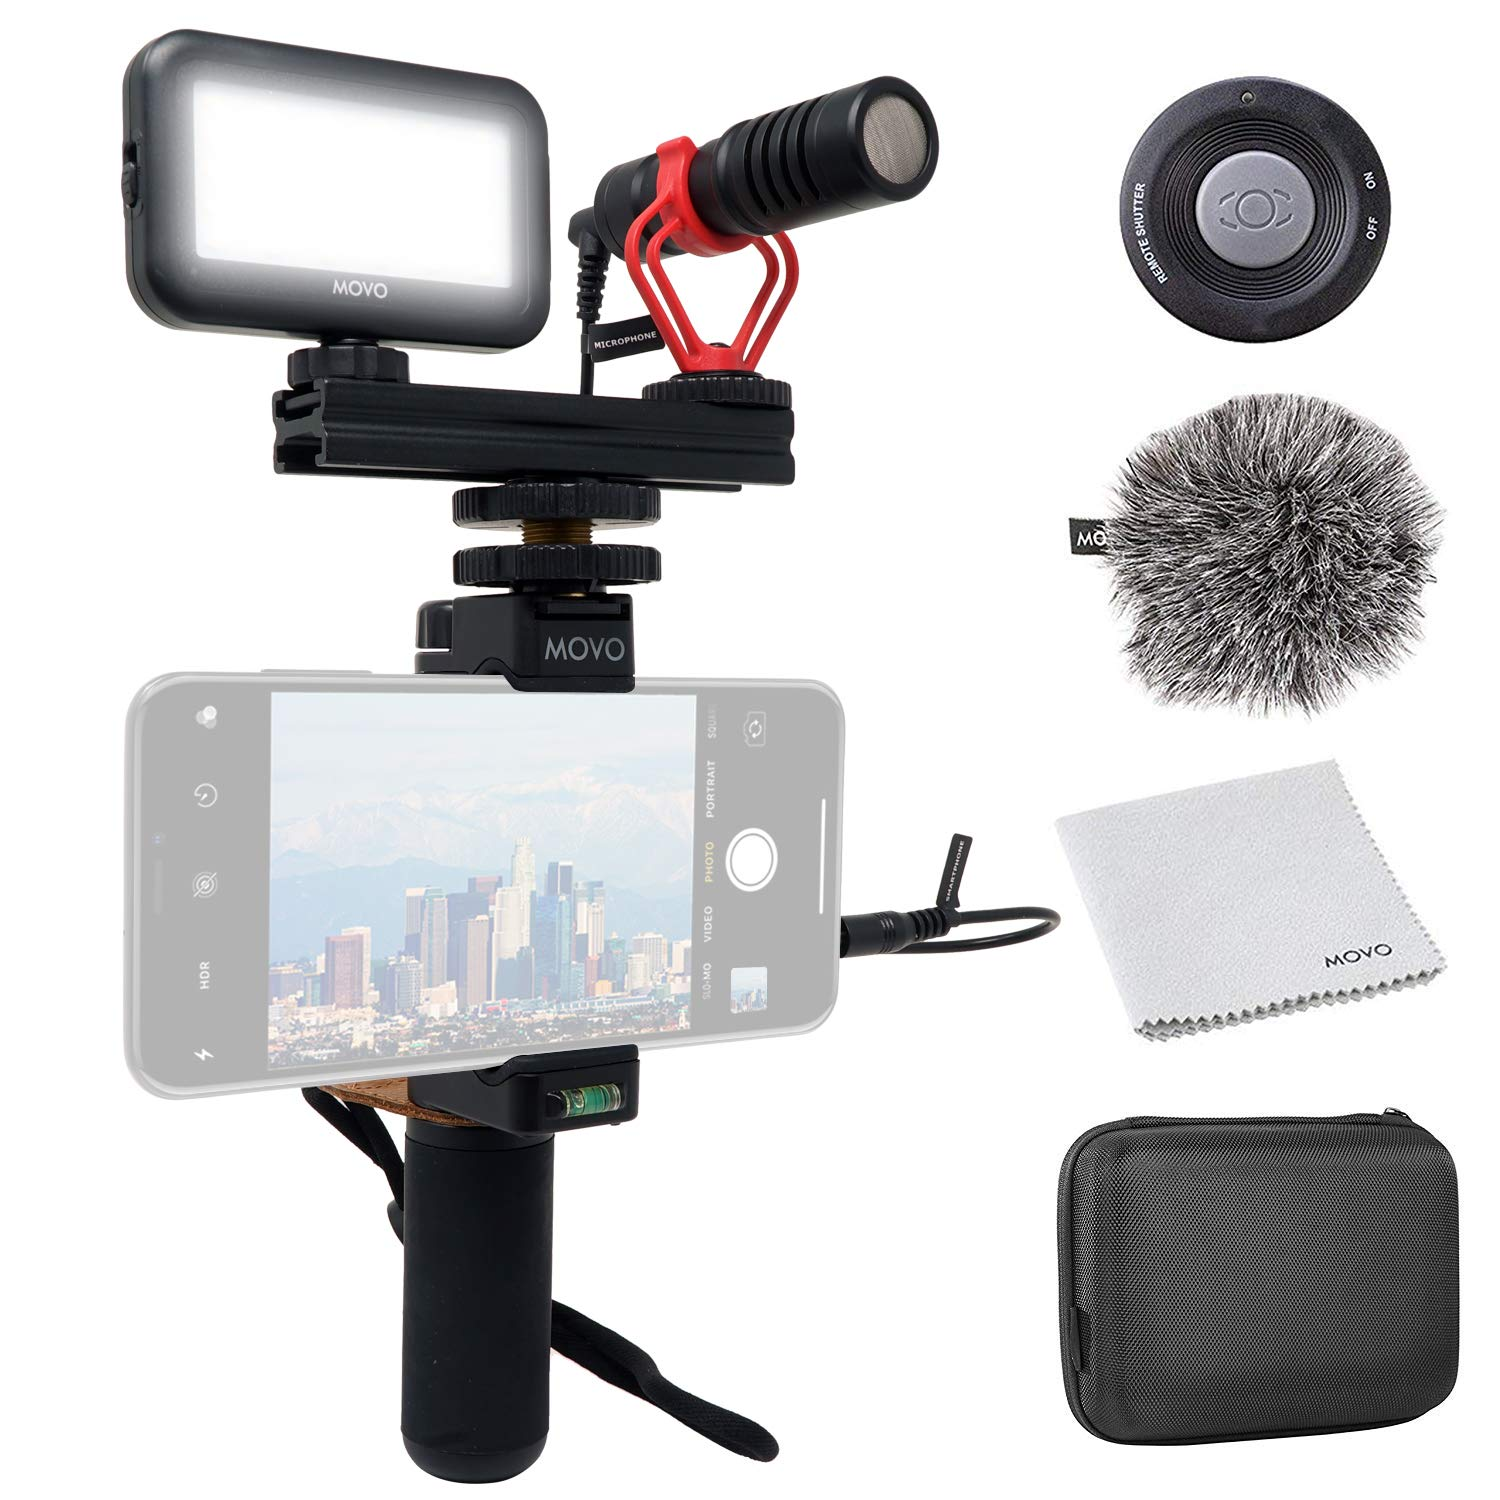 Movo Smartphone Video Kit V1 Vlogging Kit with Grip Rig, Shotgun Microphone, LED Light and Wireless Remote - YouTube Equipment Compatible with iPhone, Android Samsung Galaxy, Note and More by Movo